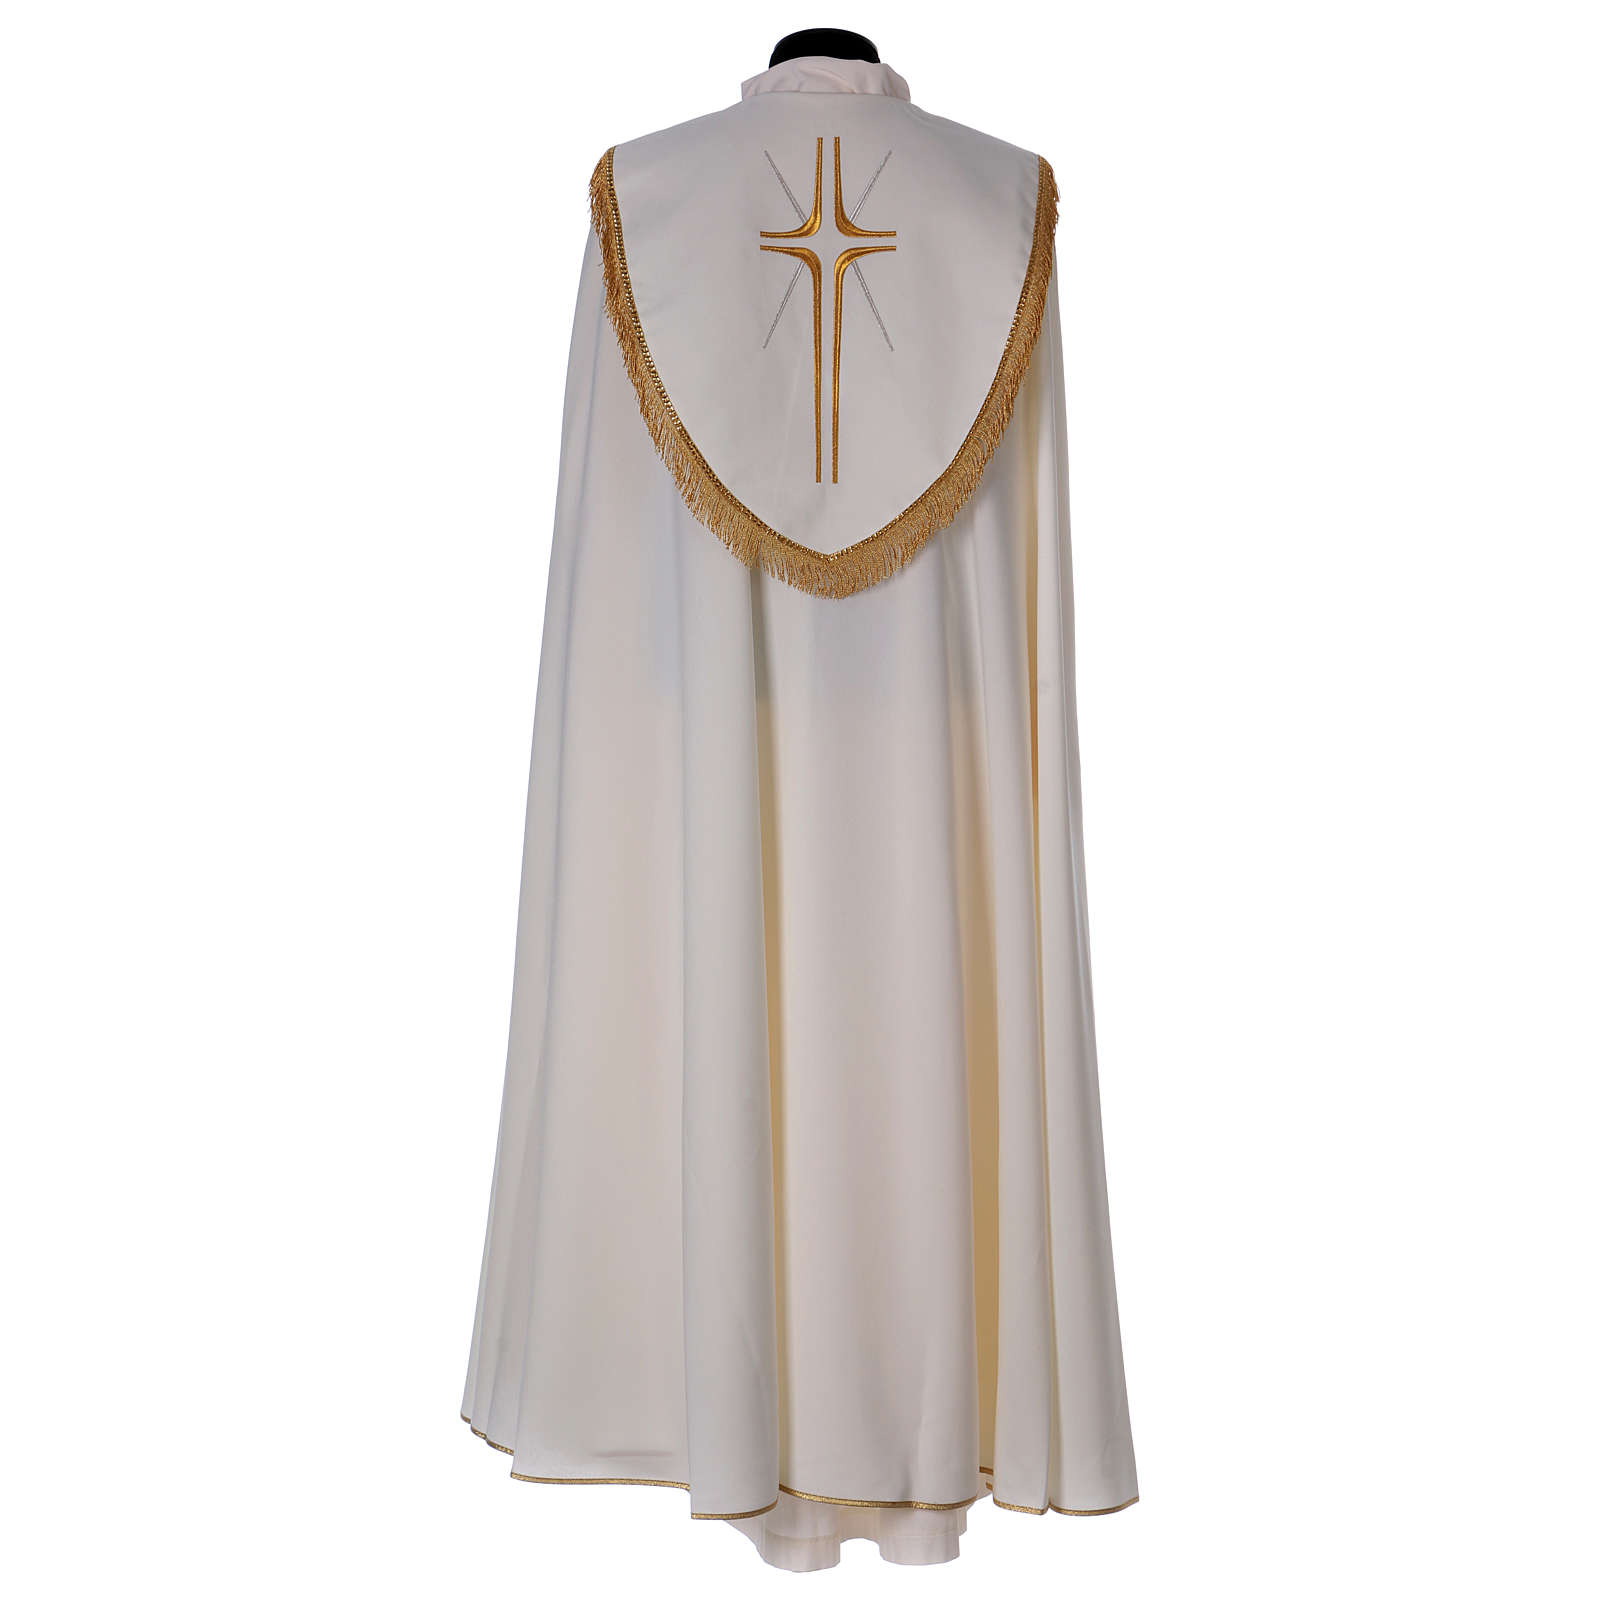 Cope in polyester with crosses 4